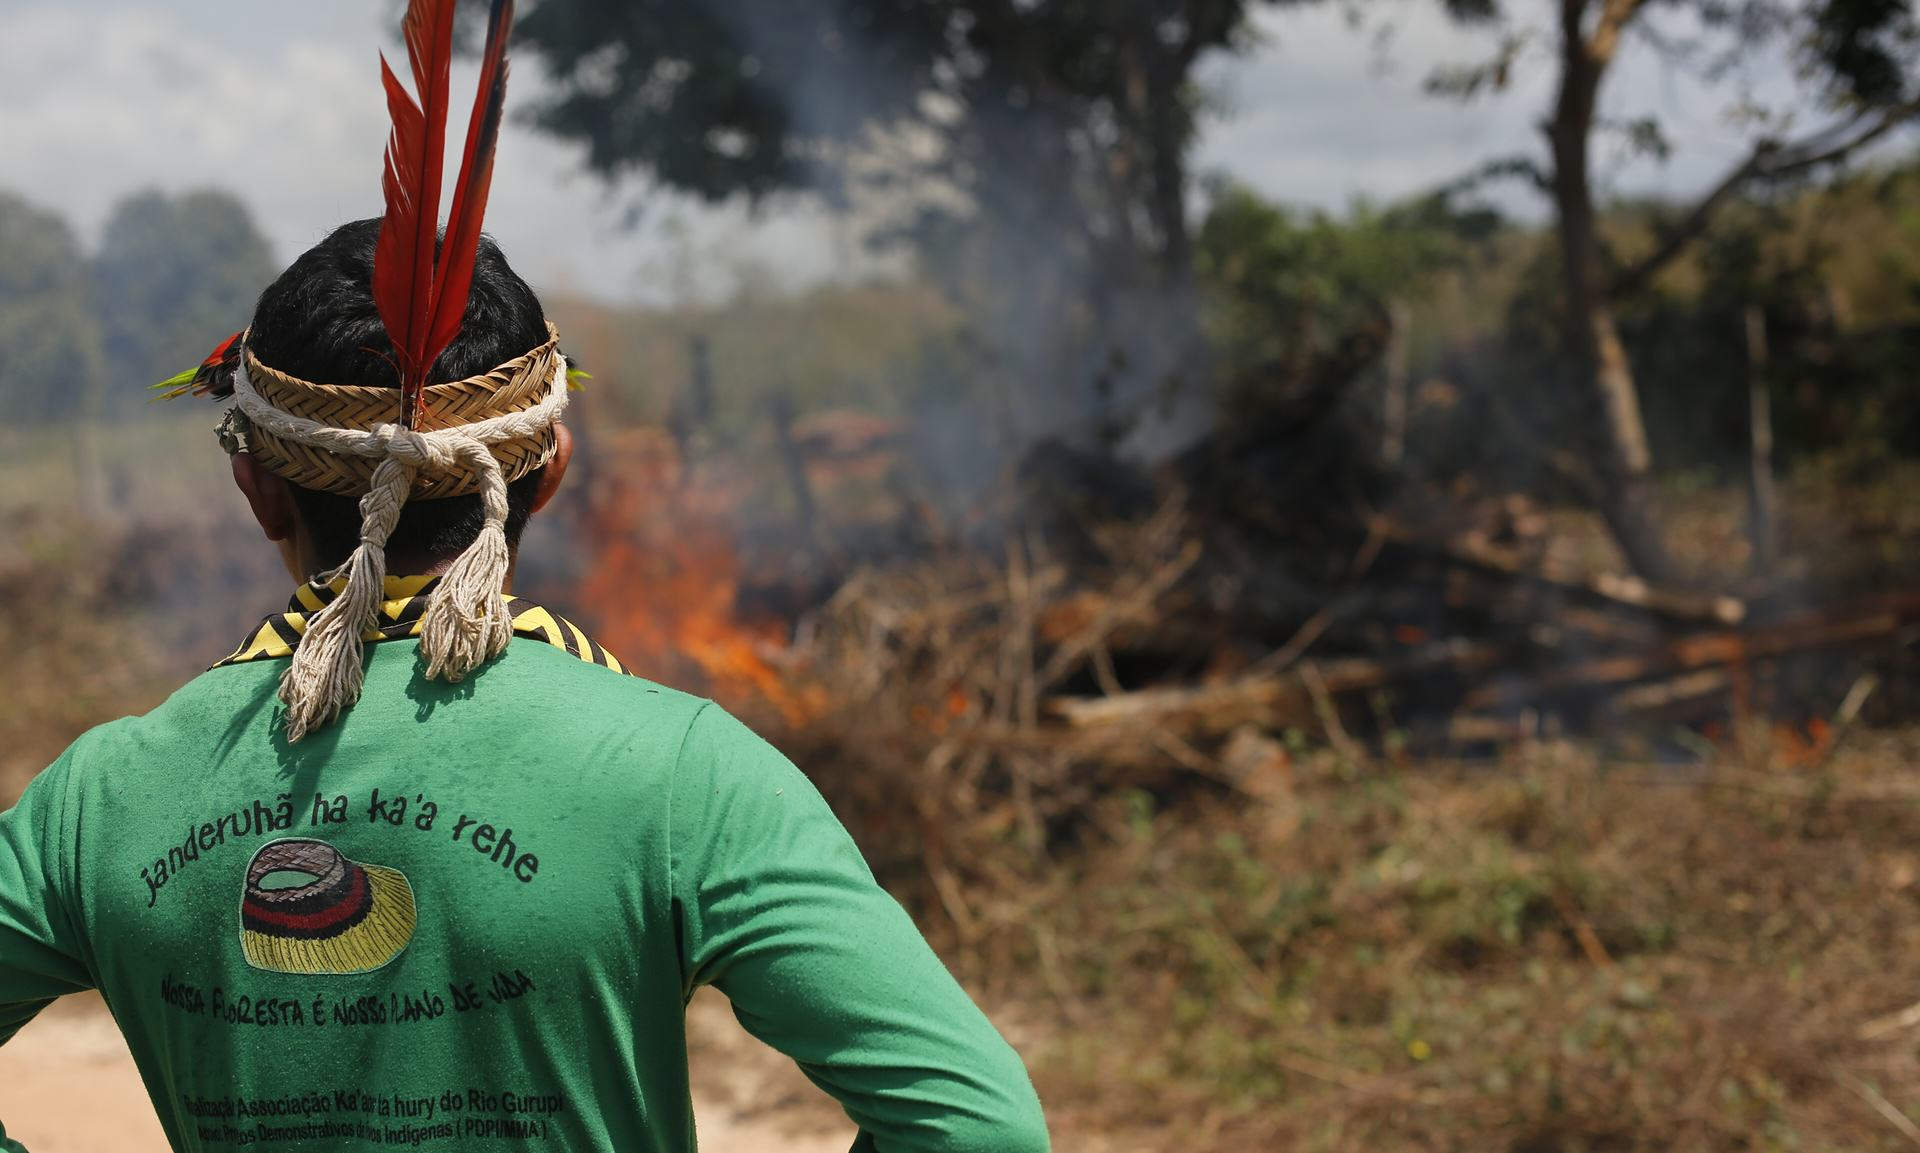 UNILAD Ka'apor Indians set fire to illegally cut logs found near the indigenous territory. Photograph Lunae ParrachoGreenpeace7 This Amazon Tribe Use Unusual Methods To Protect Their Land From Illegal Loggers